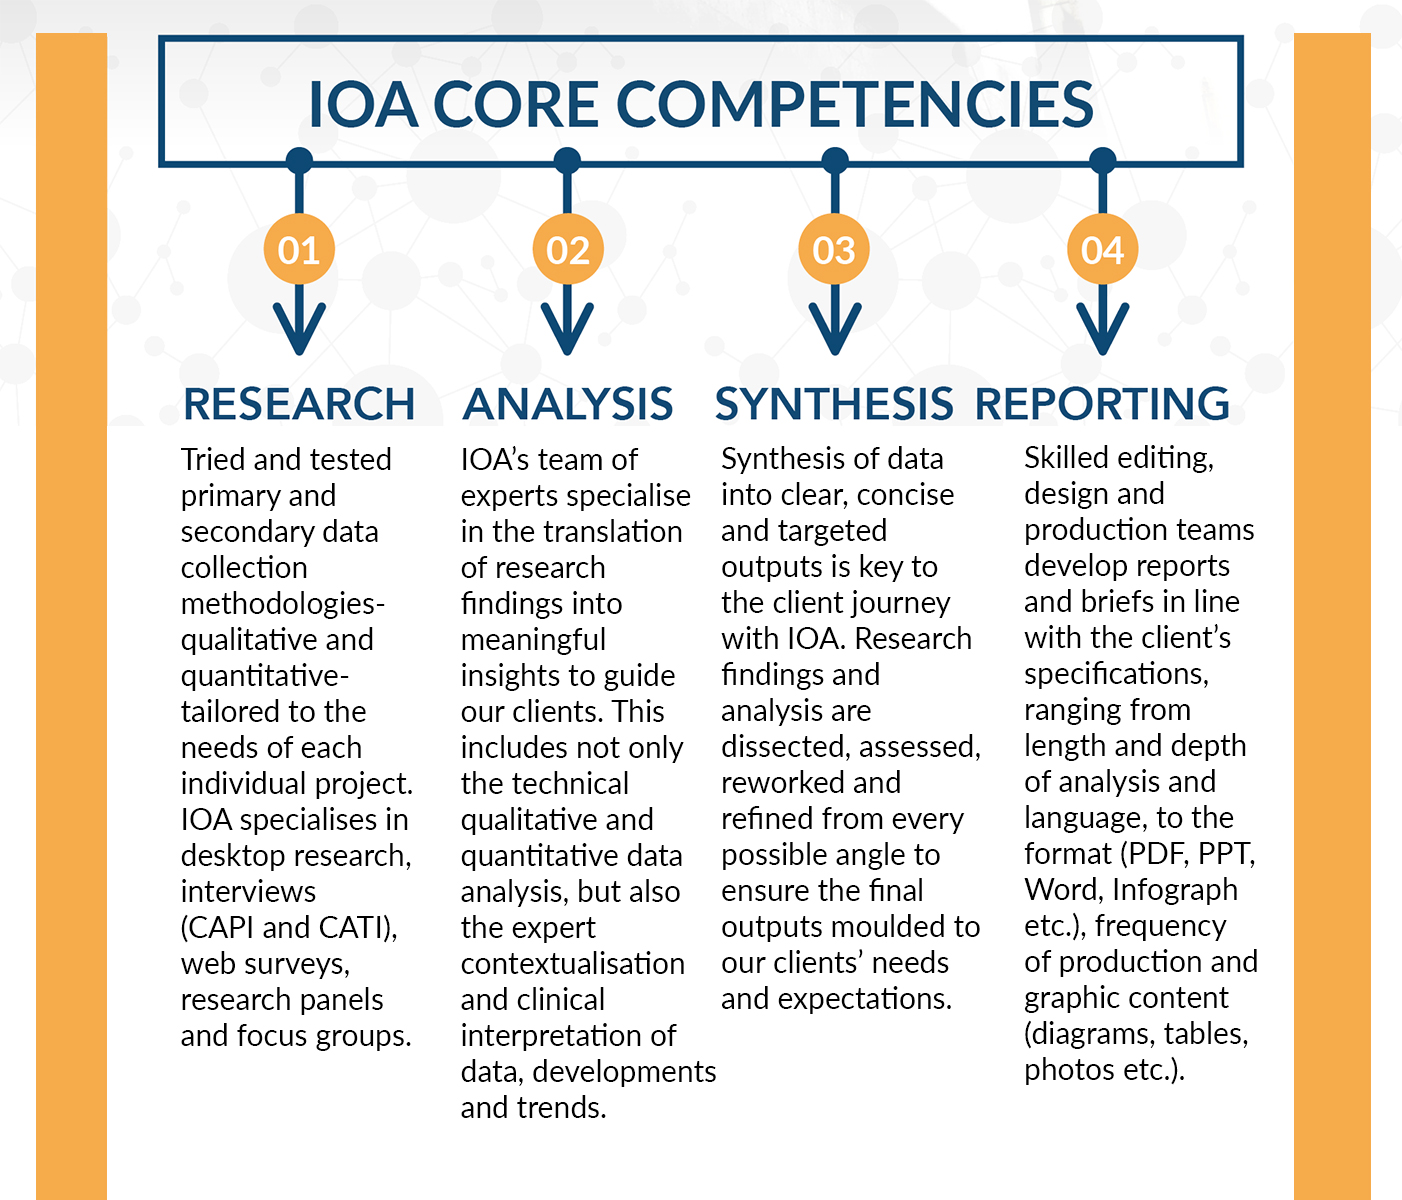 IOA-core-competencies